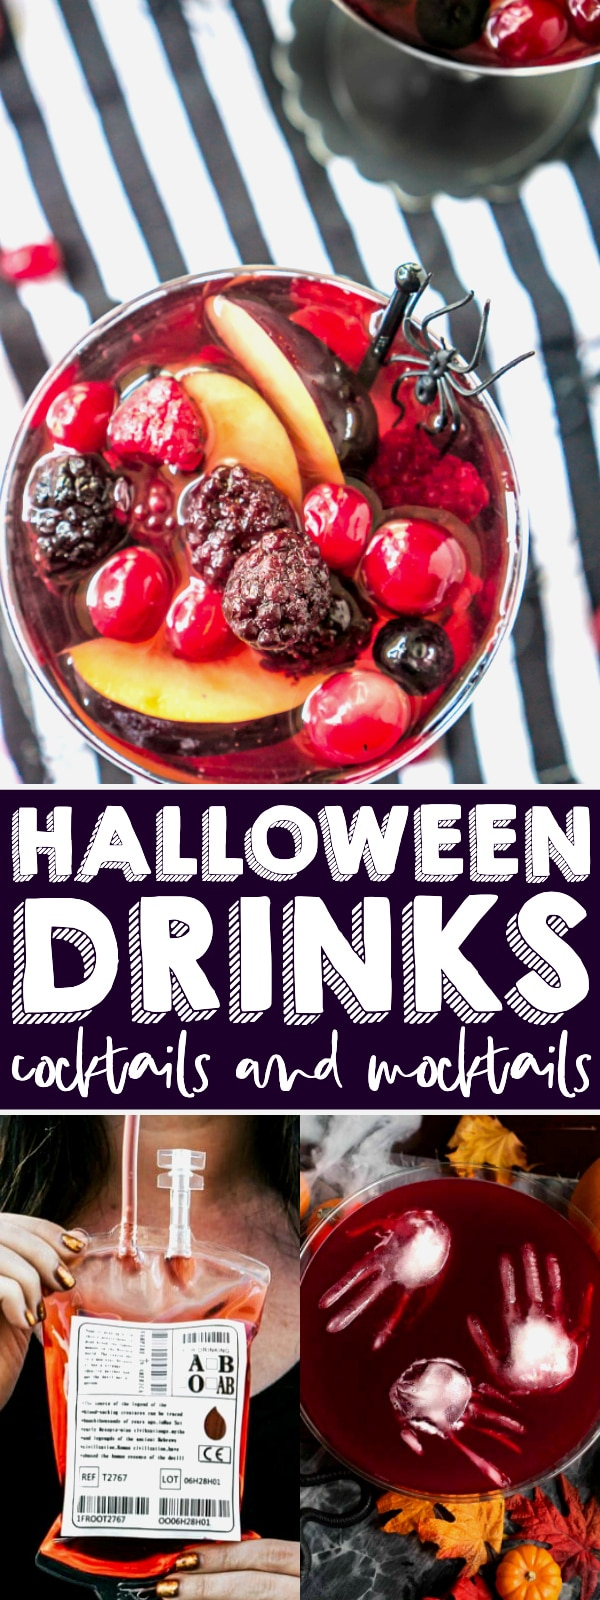 The Ultimate List of SPOOKTACULAR Halloween Drinks for the whole family! Whether you are planning a Halloween celebration for just your family or a big Halloween party, we have you covered with spooky Halloween cocktails for the adult guests and fun, colorful Halloween mocktails for the kids and non-drinkers! | The Love Nerds #halloweendrink #halloweencocktail #halloweenpunch